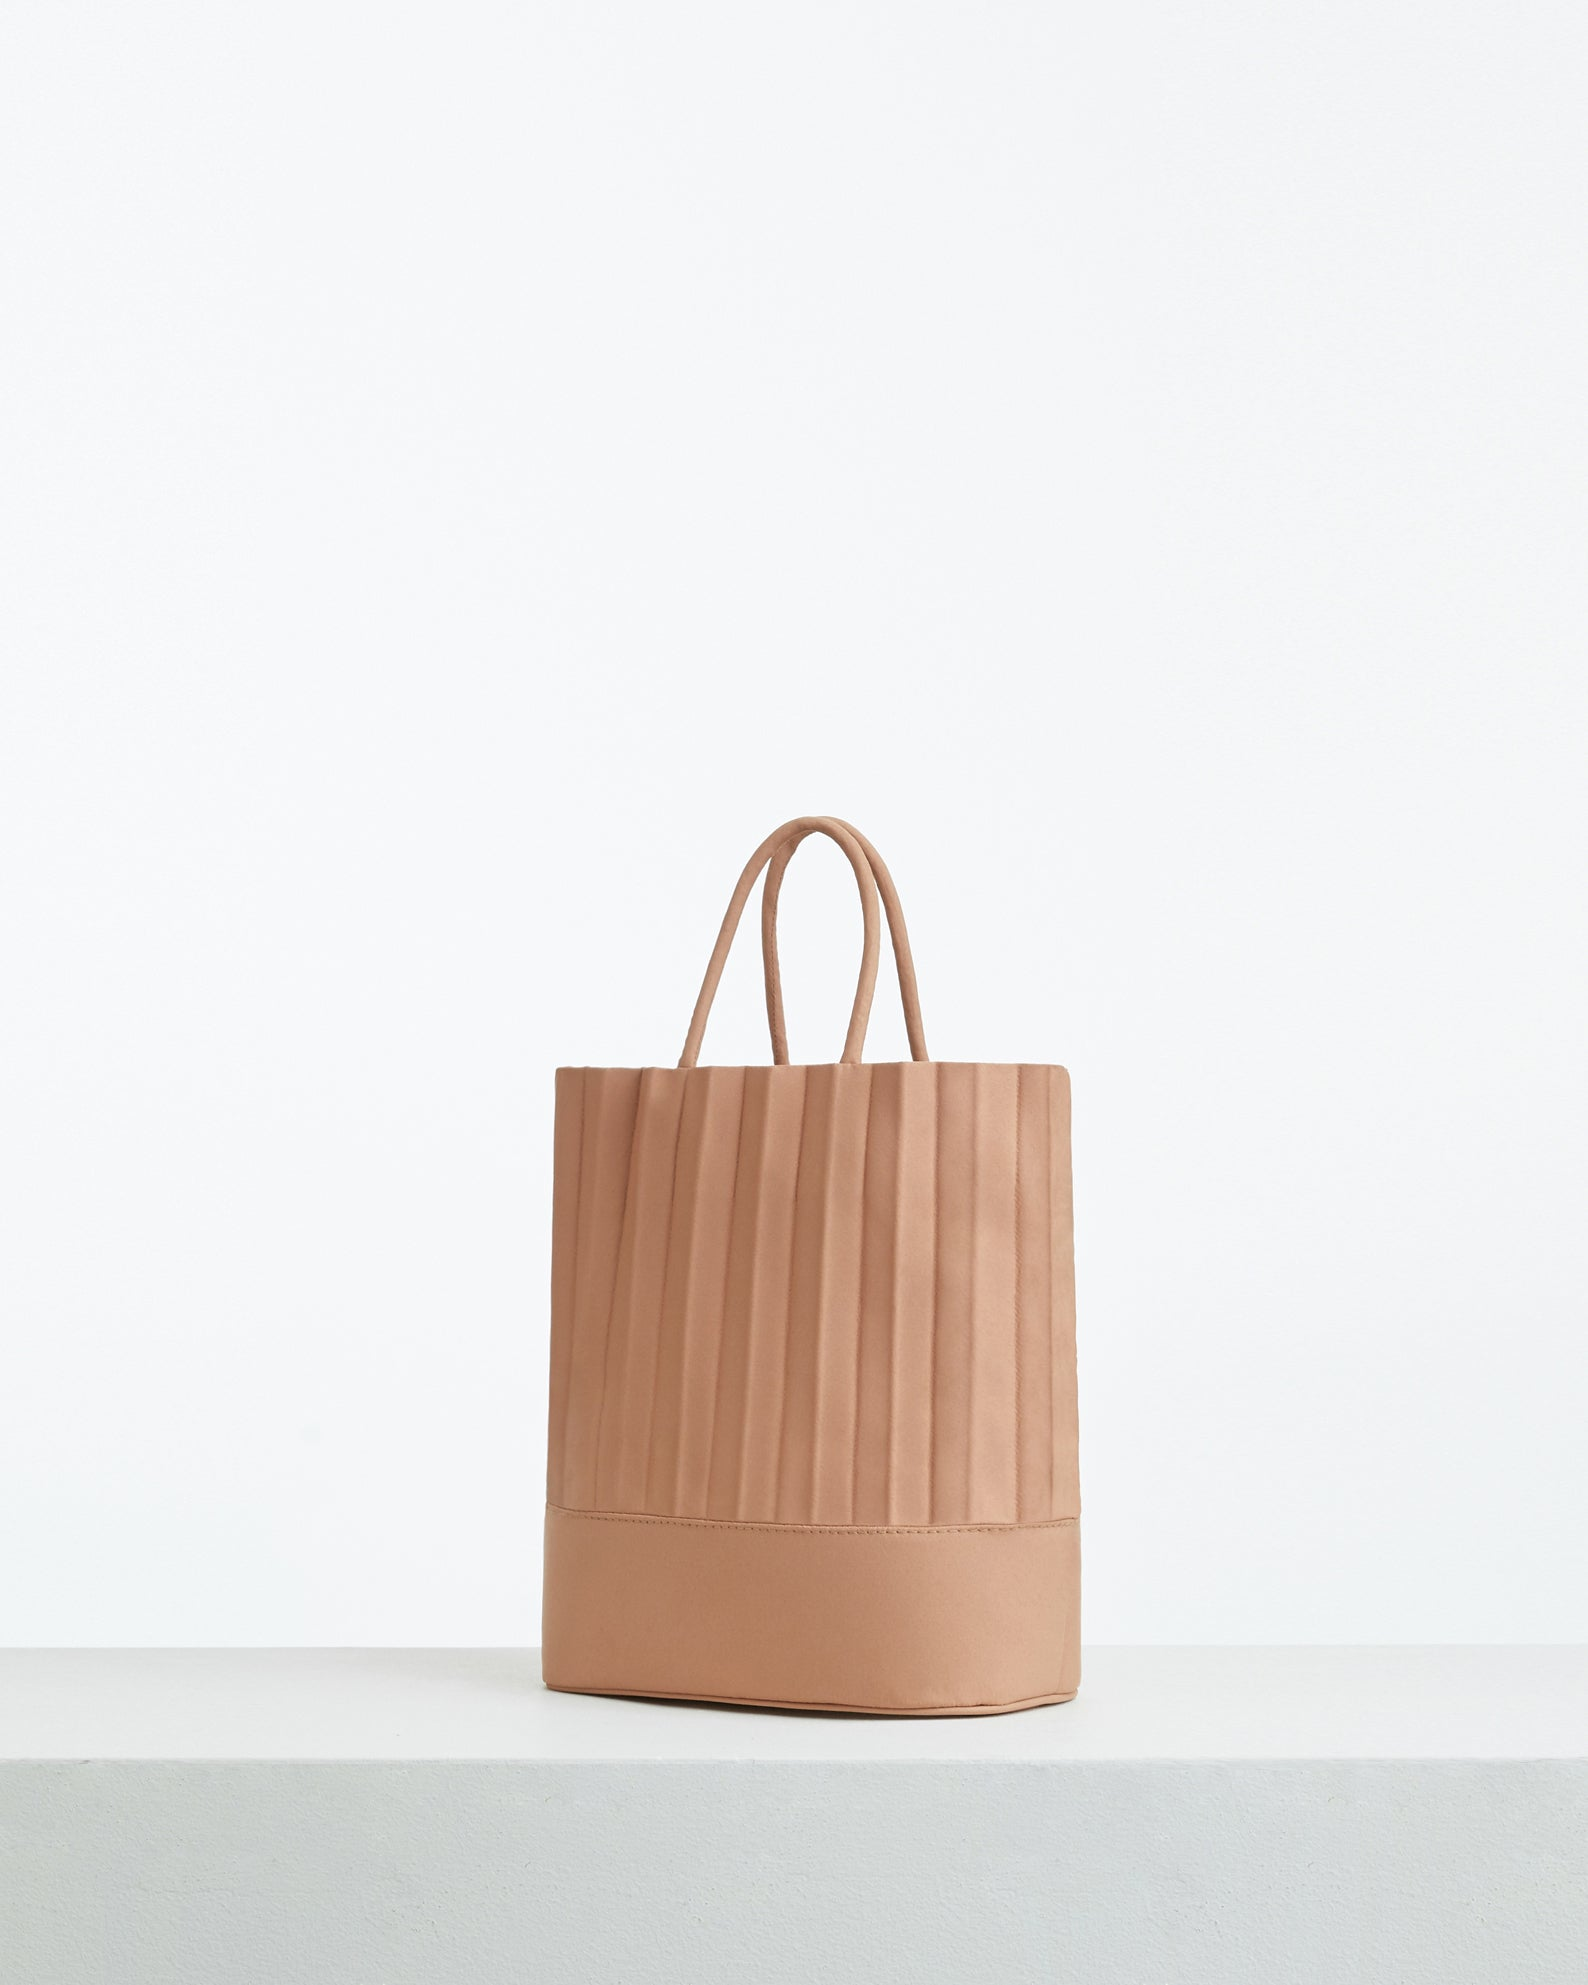 aPacklet (Pitcher) | Handbag in Sand